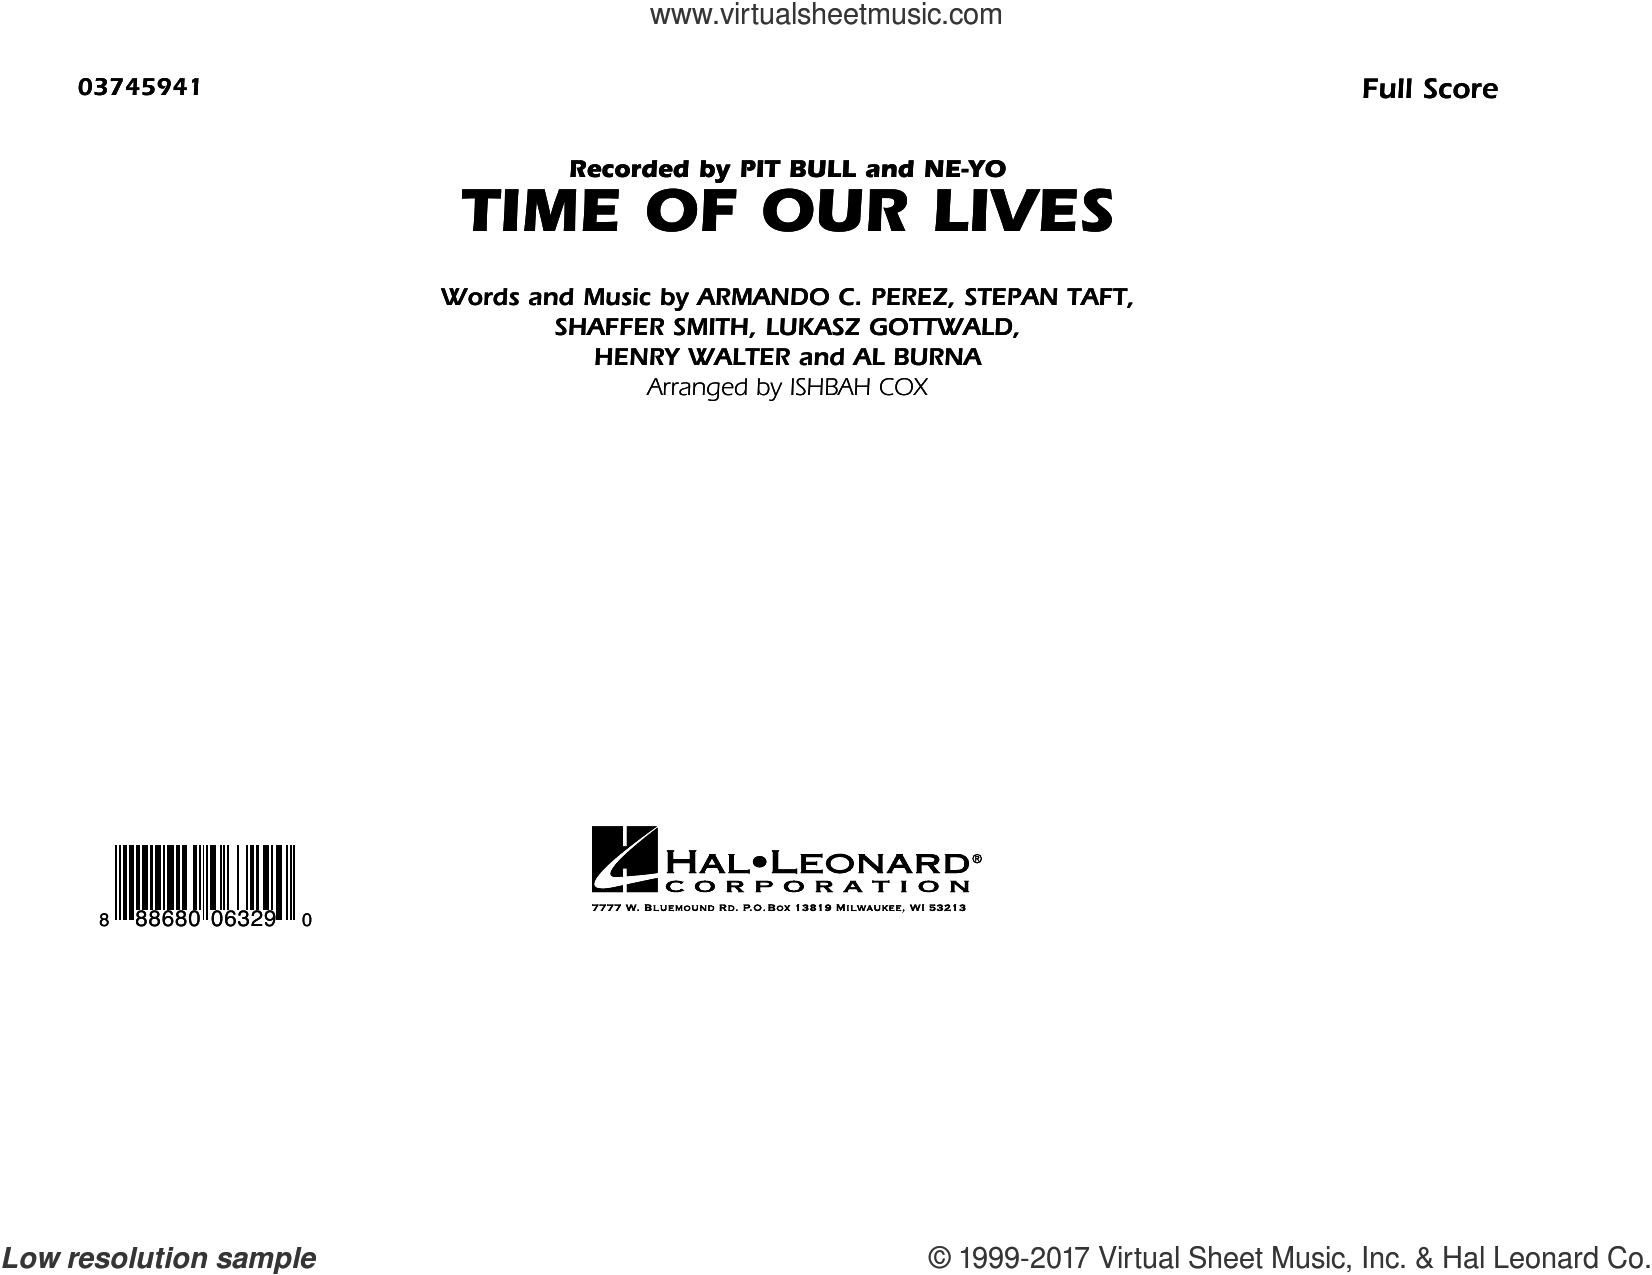 Time of Our Lives (COMPLETE) sheet music for marching band by Shaffer Smith, Al Burna, Armando C. Perez, Henry Walter, Ishbah Cox, Lukasz Gottwald, Pitbull & Ne-Yo and Stepan Taft, intermediate